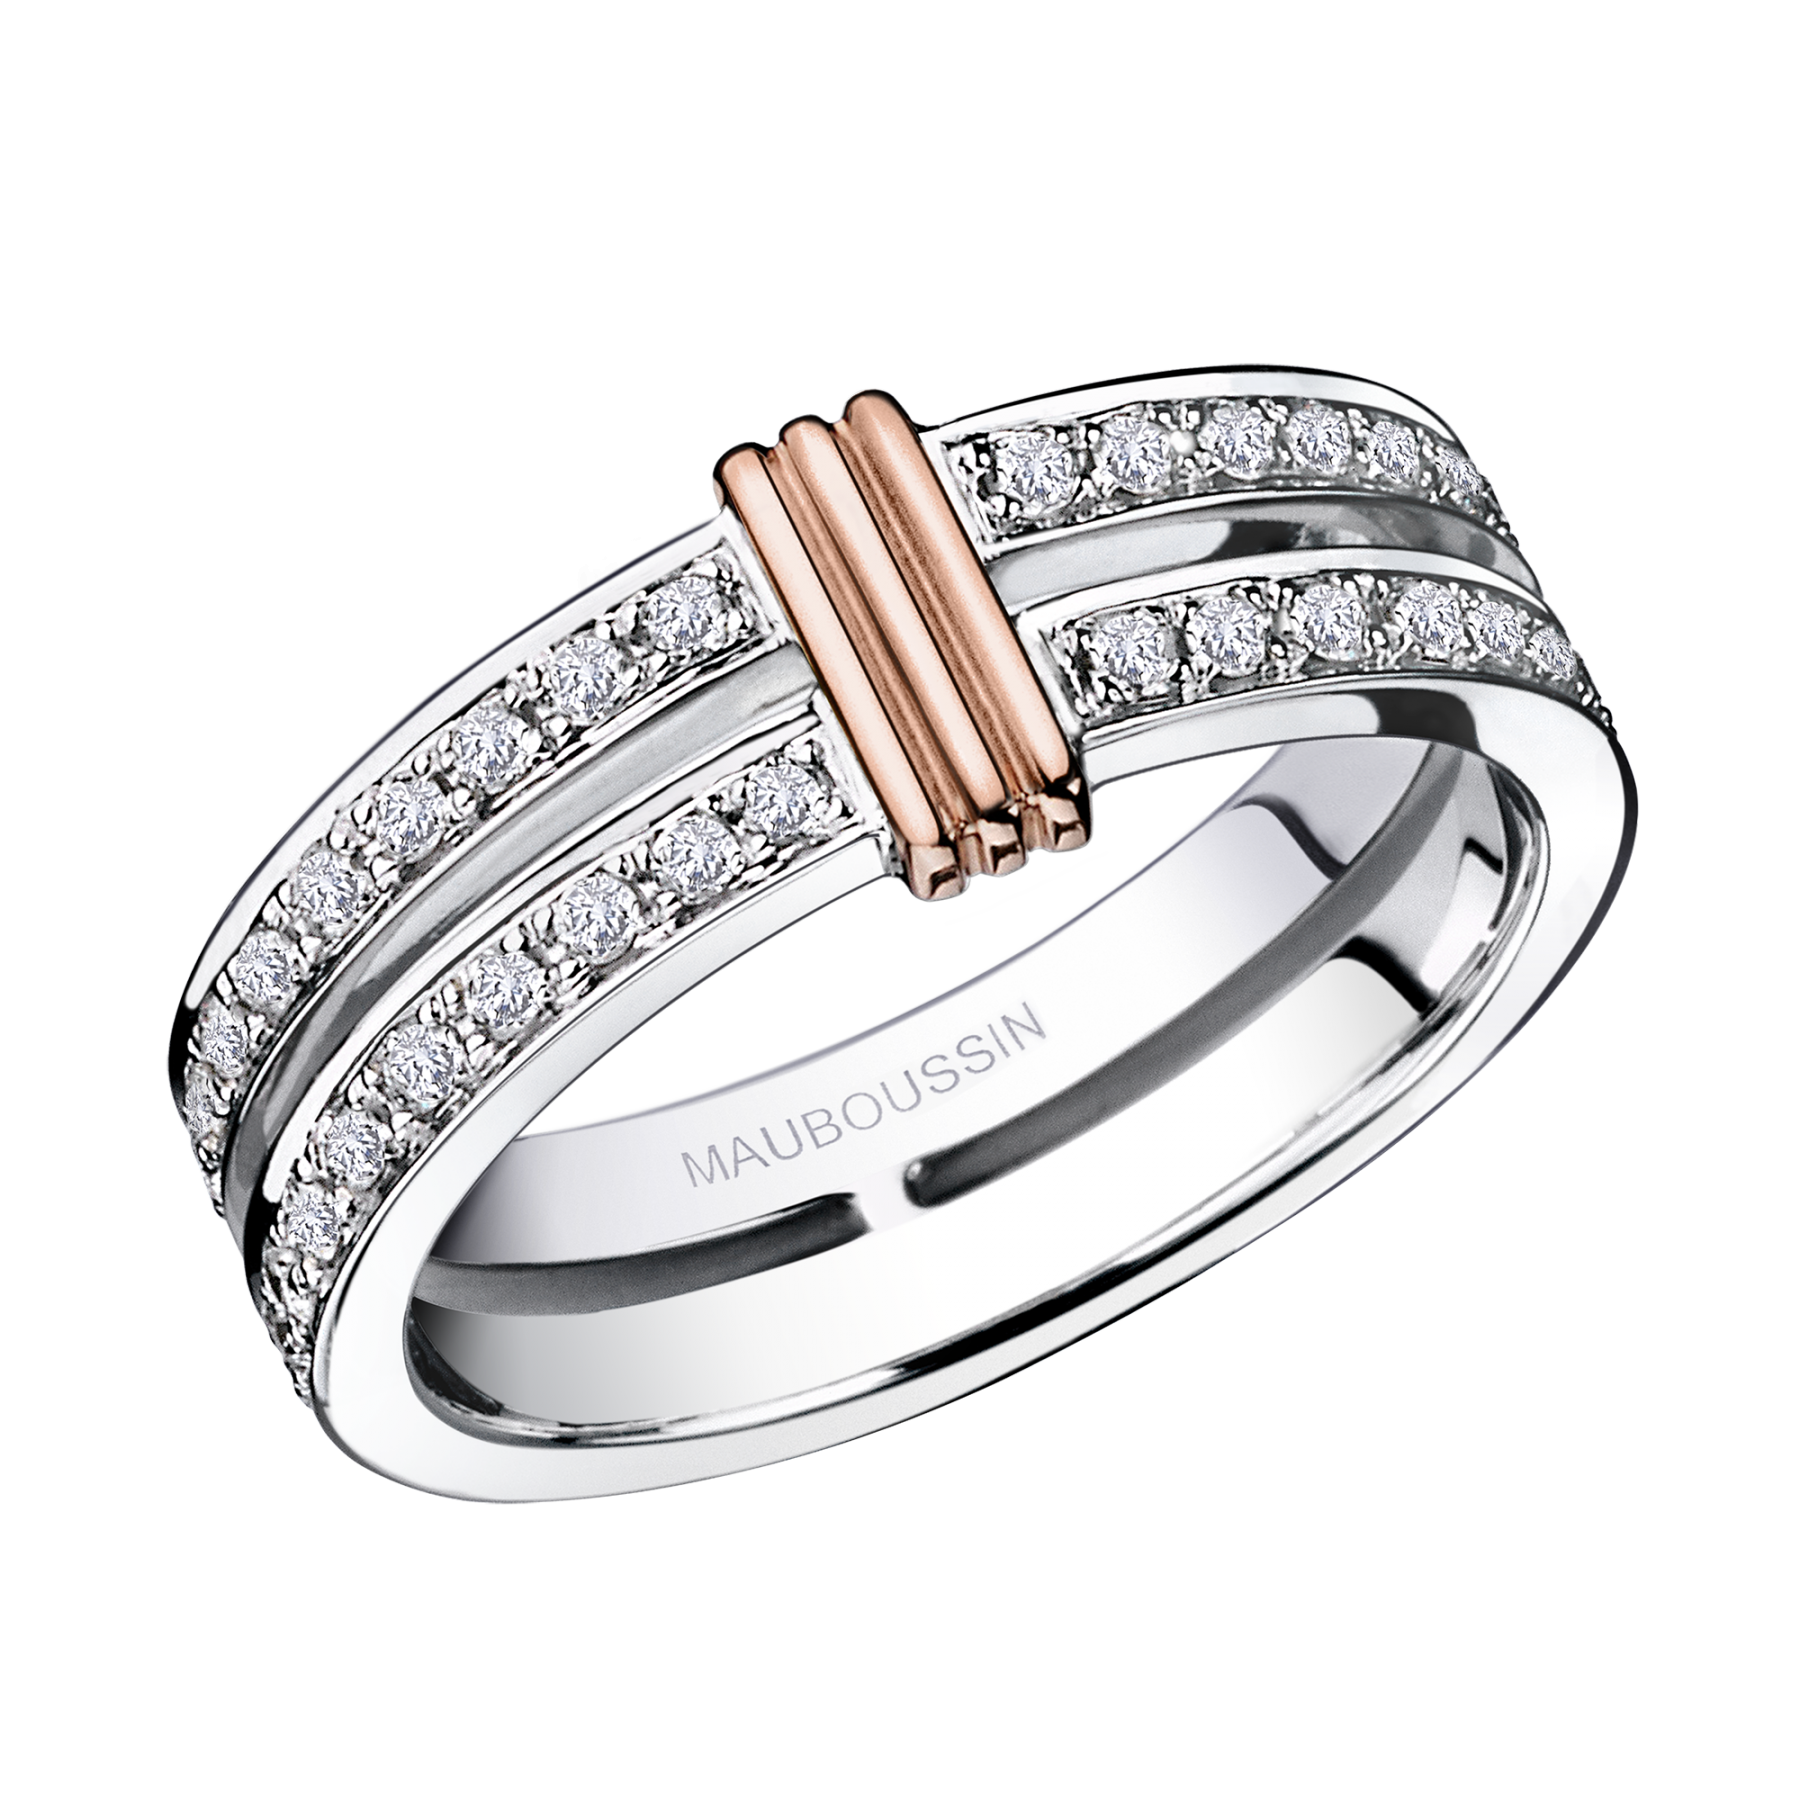 Wedding Band Subtile Eternit� White Gold Link In Pink Diamonds: Link Diamond Wedding Band At Reisefeber.org